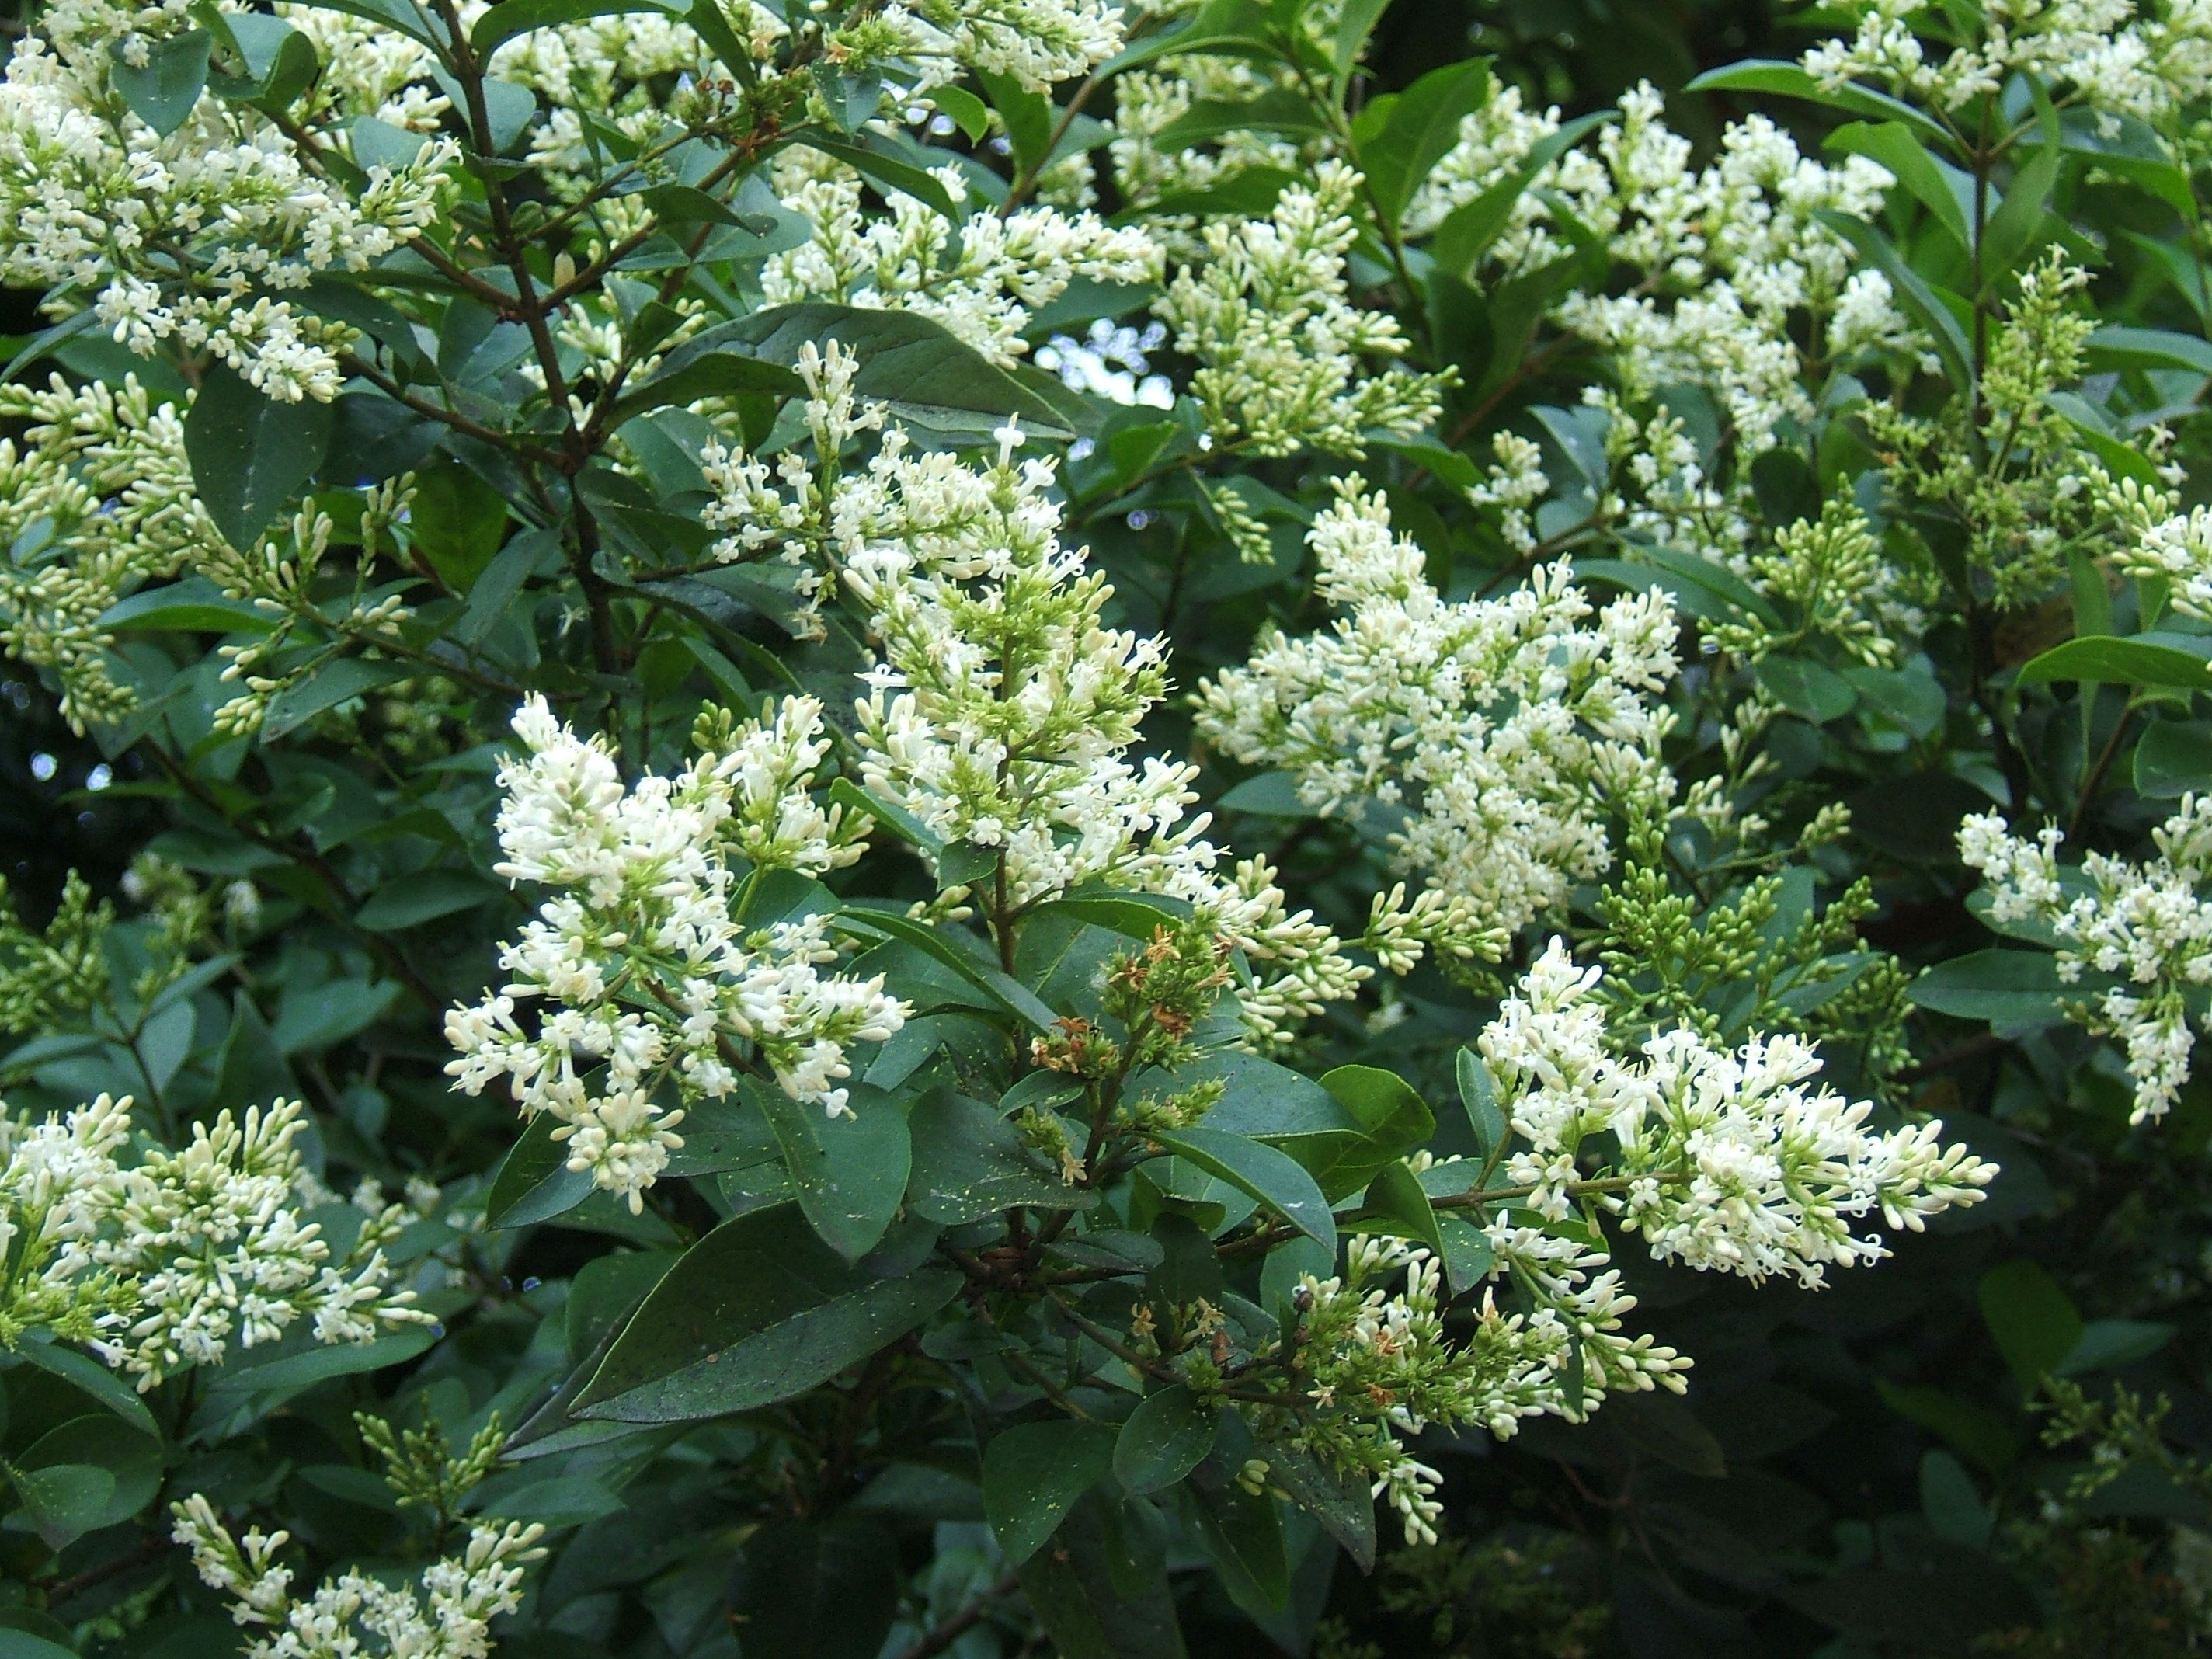 Ligustrum Evergreen Beautiful Fragrant White Blooms Through